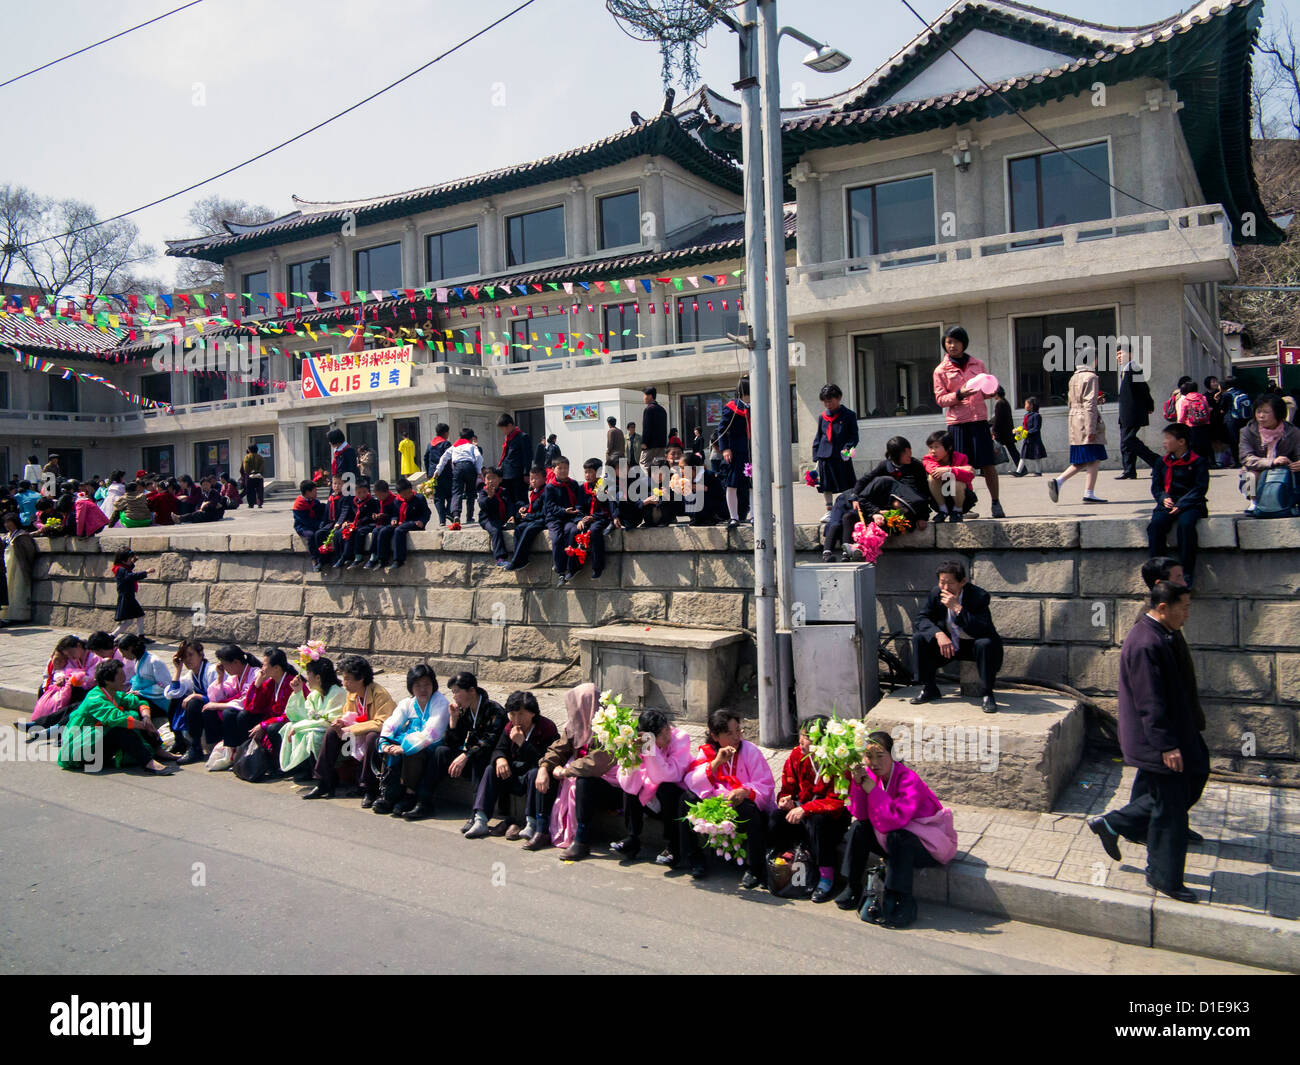 Typical urban street scene, Pyongyang, Democratic People's Republic of Korea (DPRK), North Korea, Asia - Stock Image